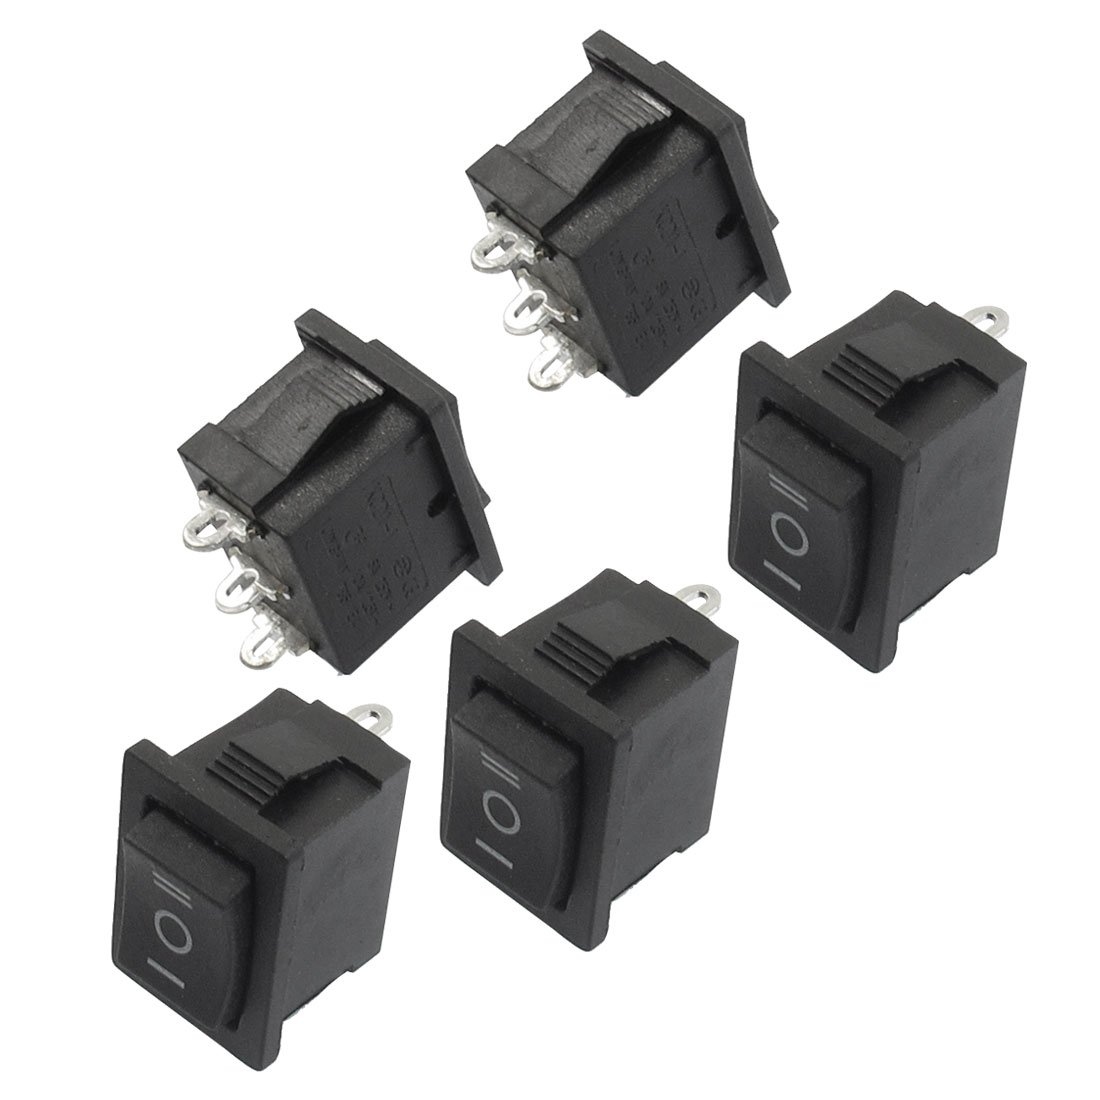 WSFS Hot 5 pcs SPDT On/Off/On Mini Black 3 Pin Rocker Switch AC 6A/250V 10A/125V yellow led on off rocker switch w terminal protector set for electric appliances 2 pcs